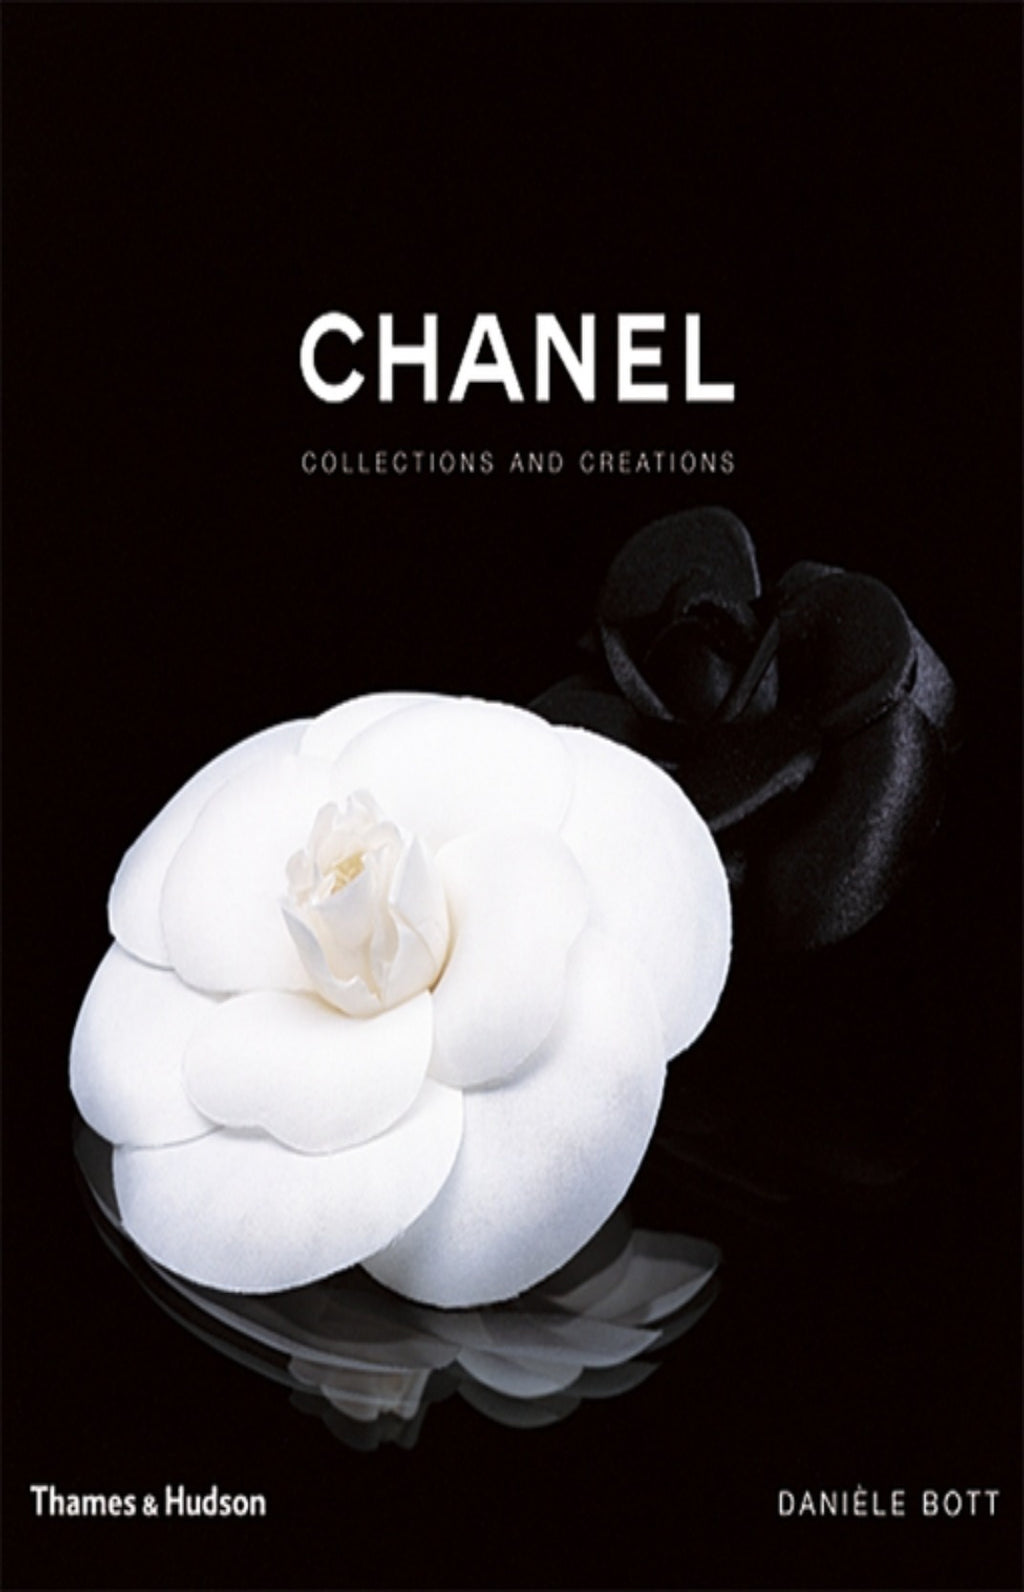 Chanel : Collections and Creations